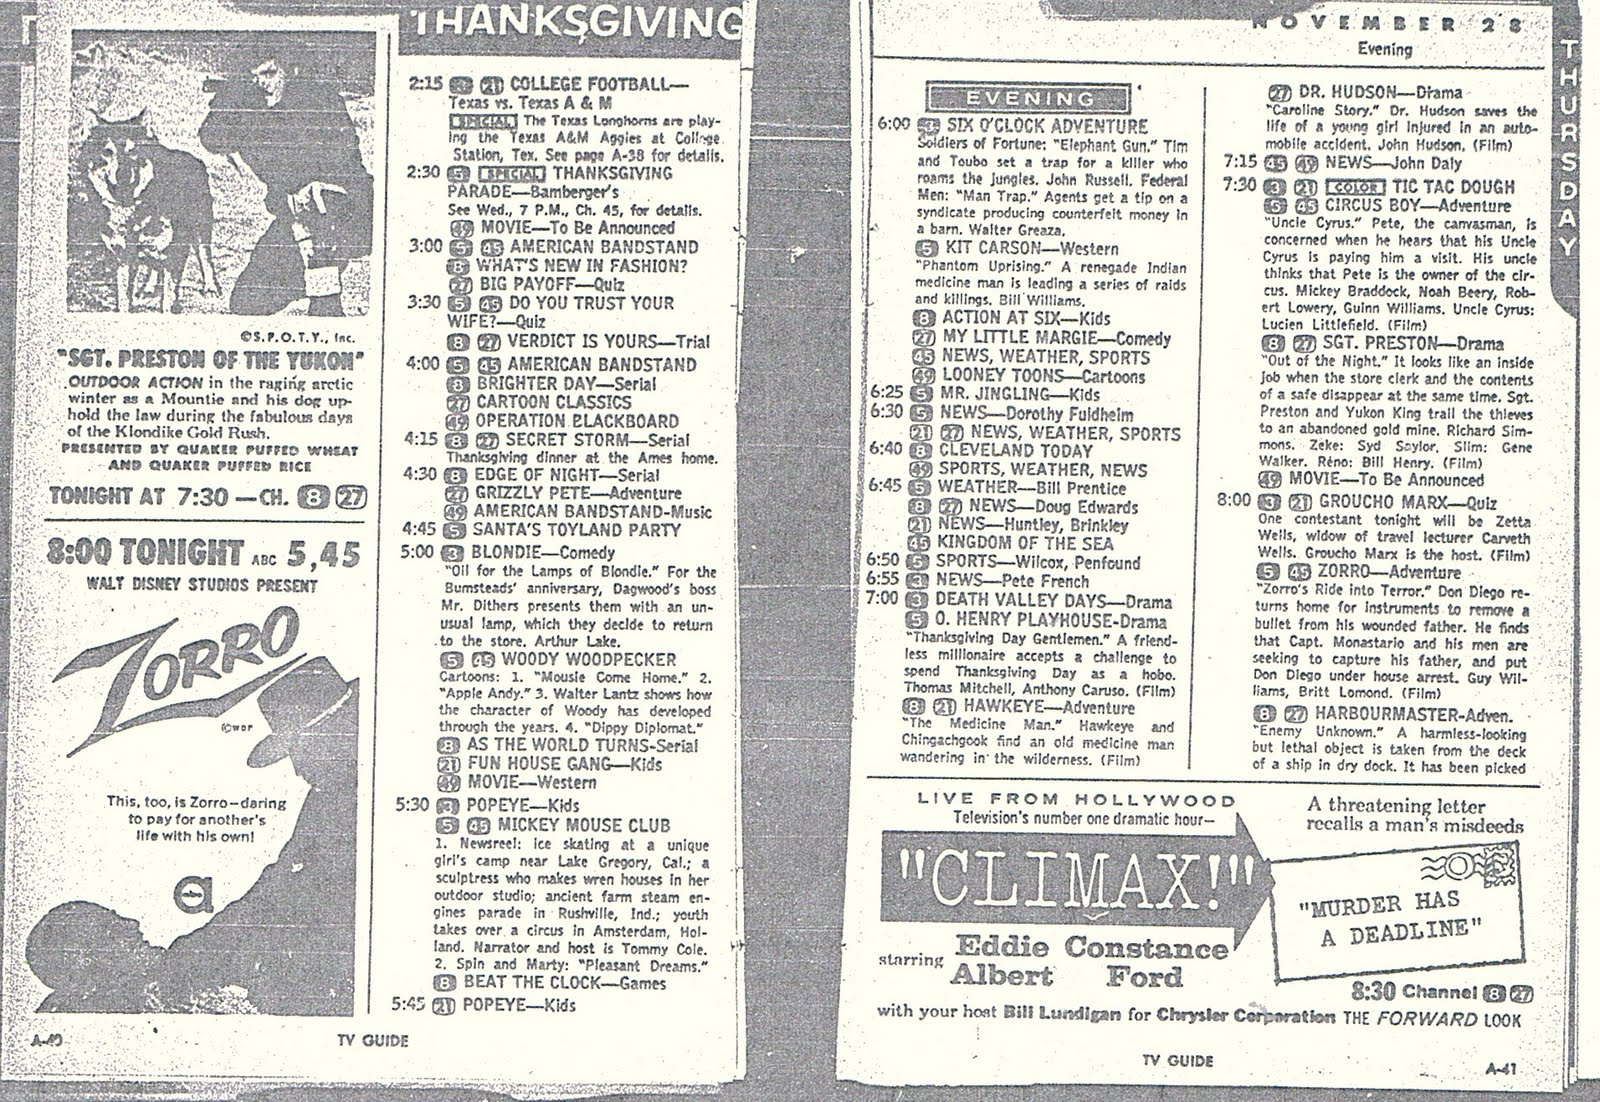 cleveland classic media: looking at thanksgiving:thursday november